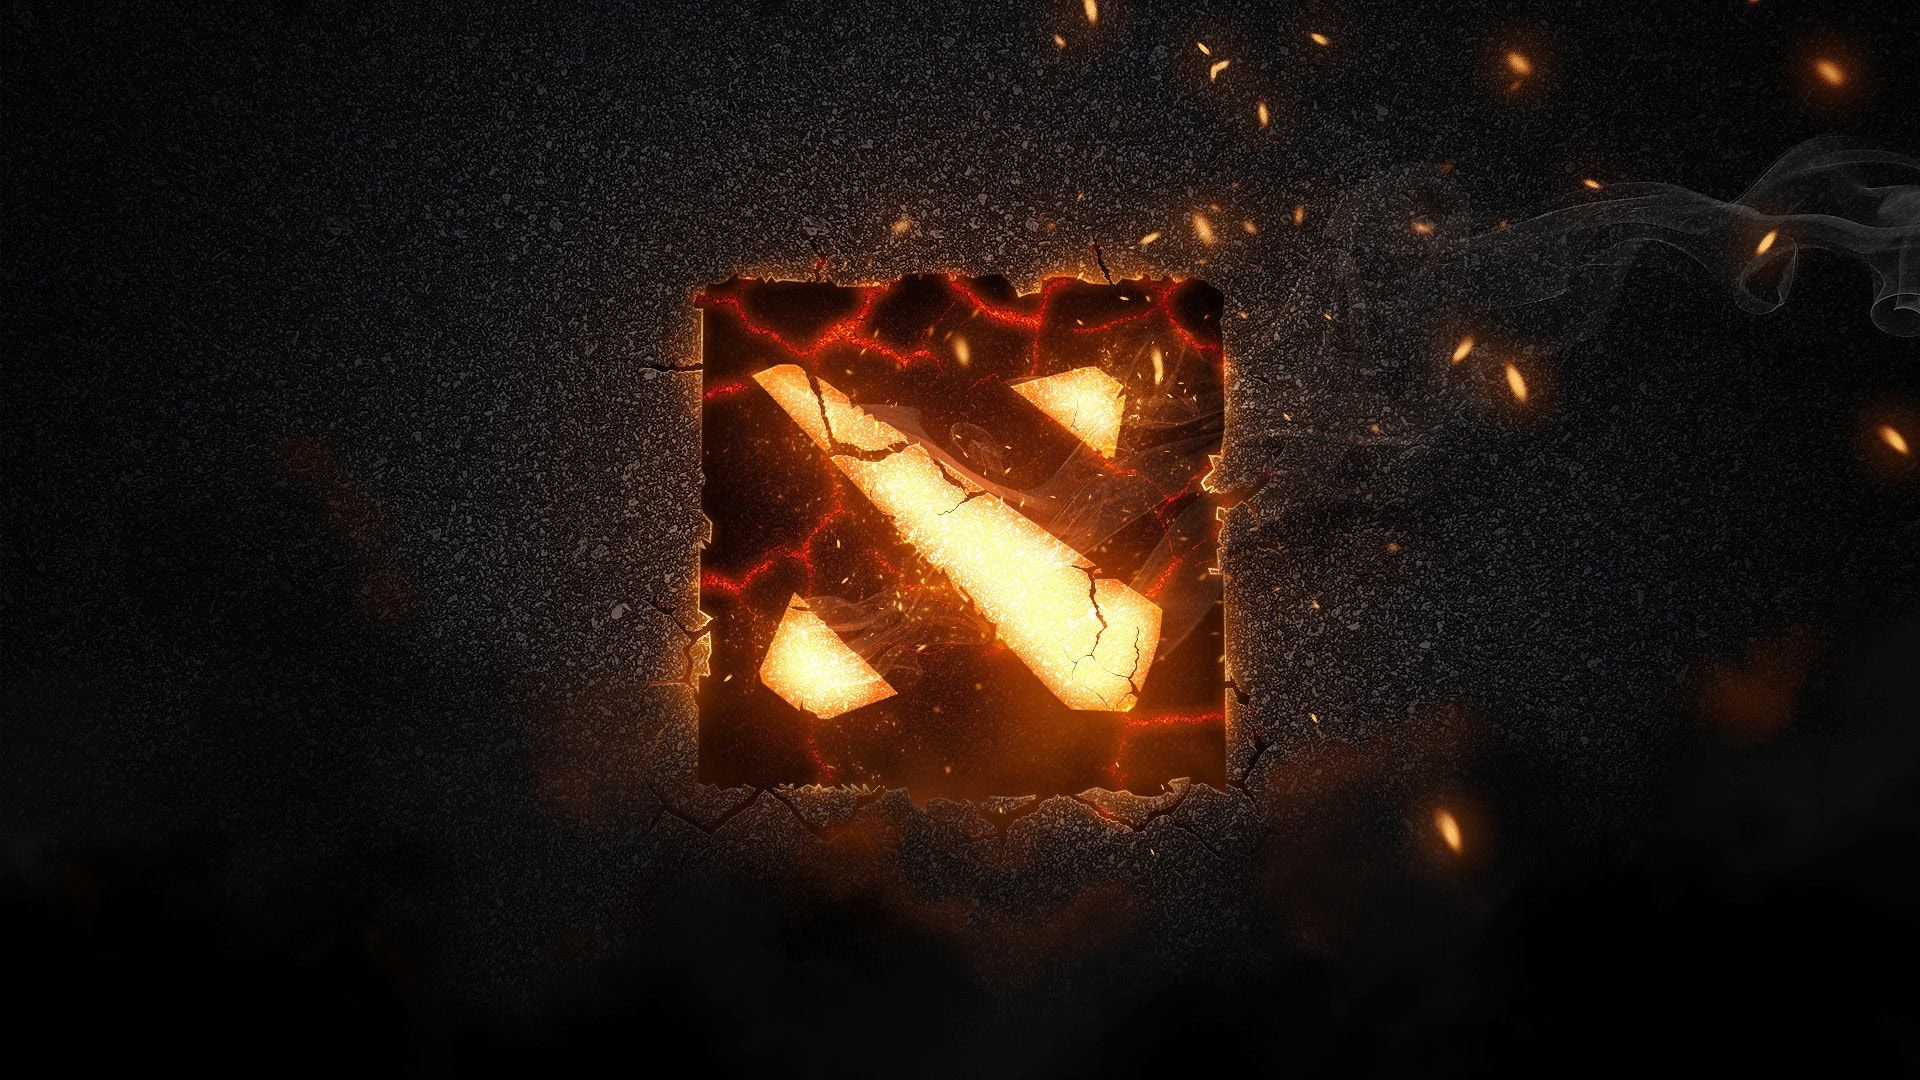 Hd wallpaper dota 2 - Dota 2 Logo Flaming Wallpaper Hd Picture Game